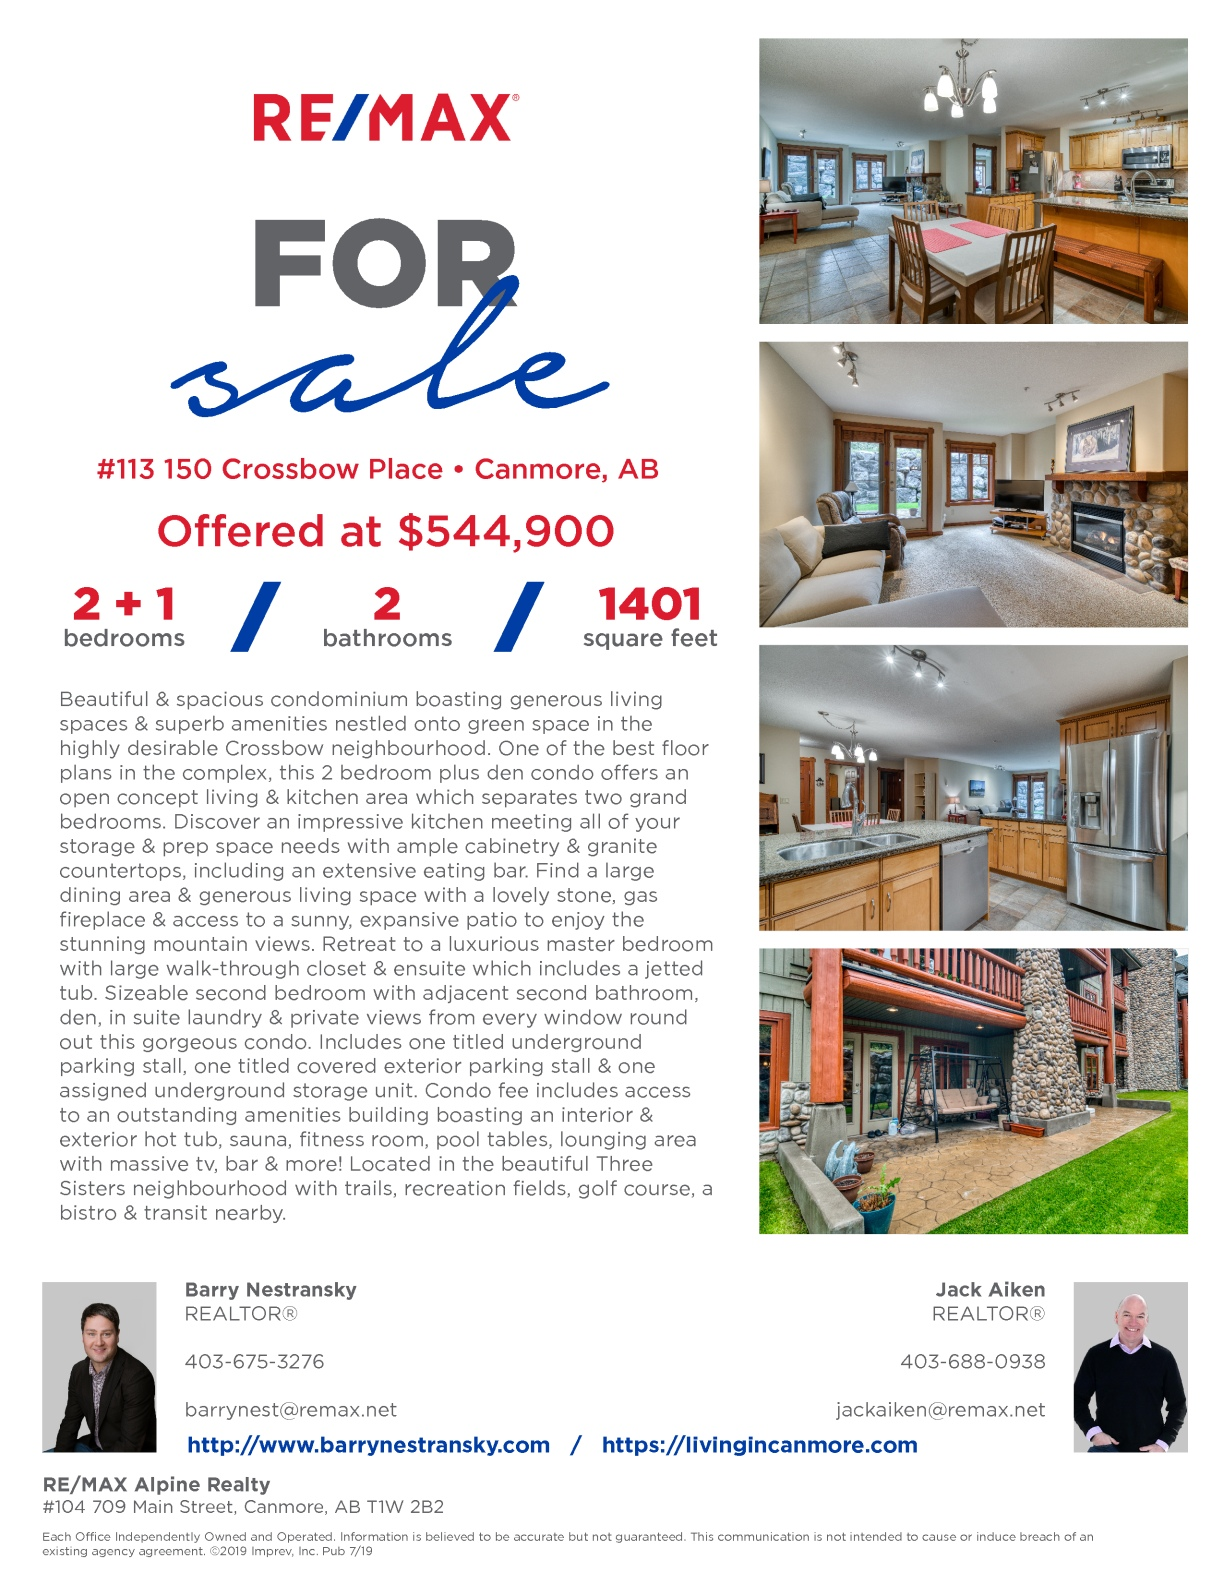 #113 150 Crossbow Place, Canmore